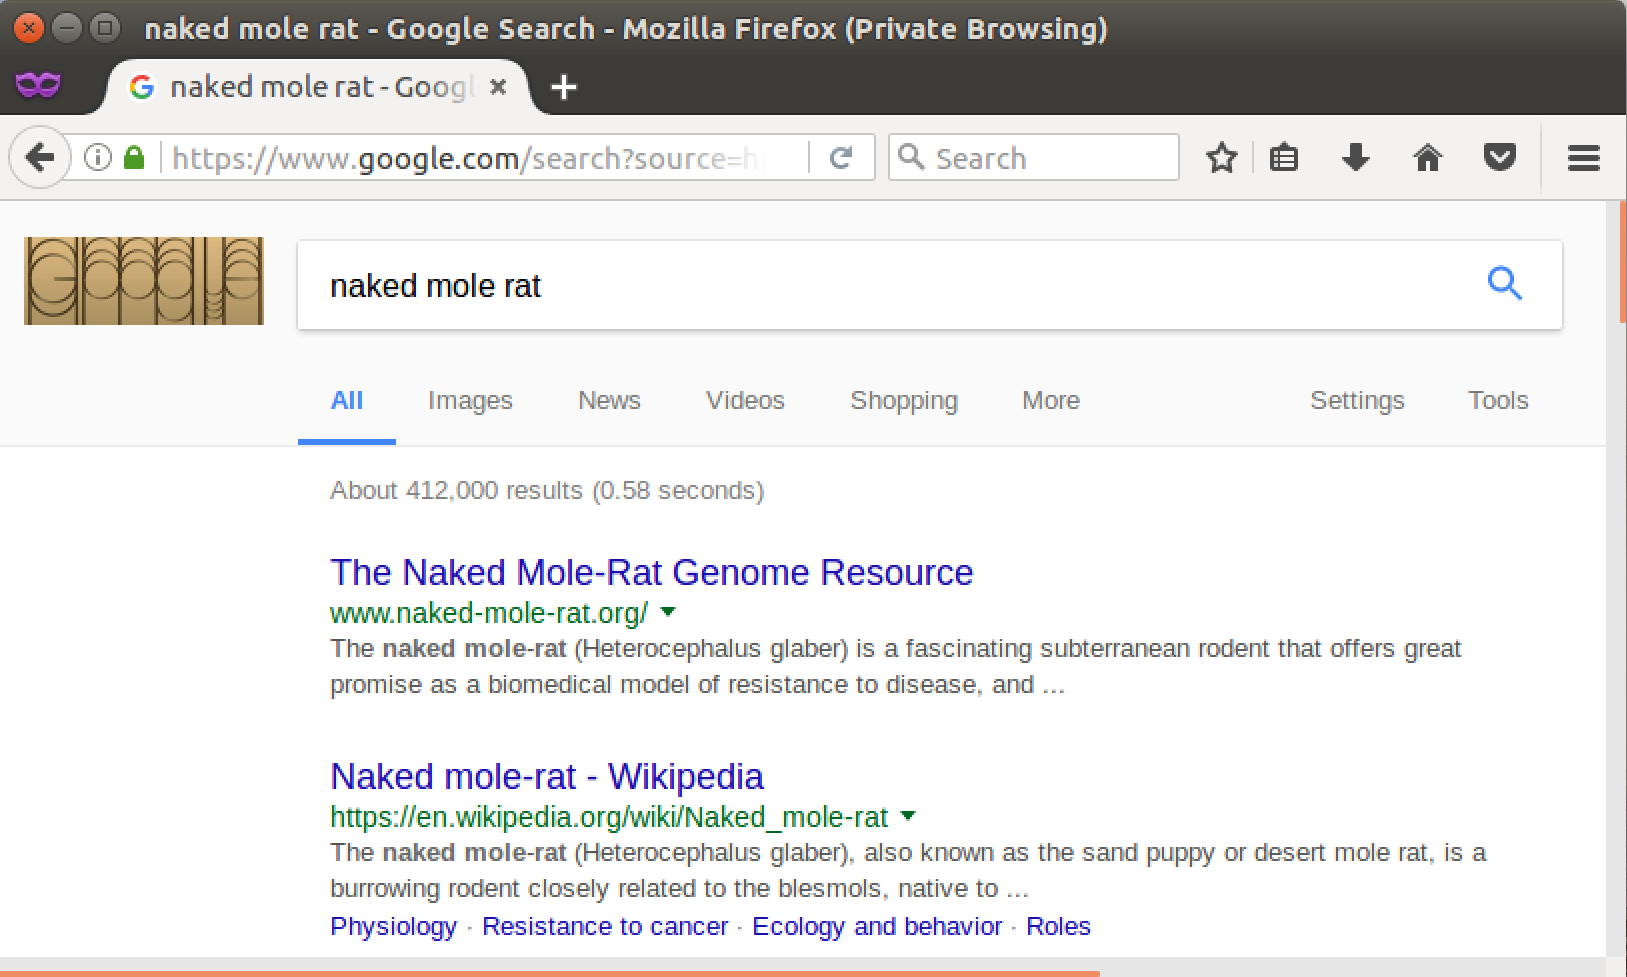 google search - naked mole rat - in firefox private mode